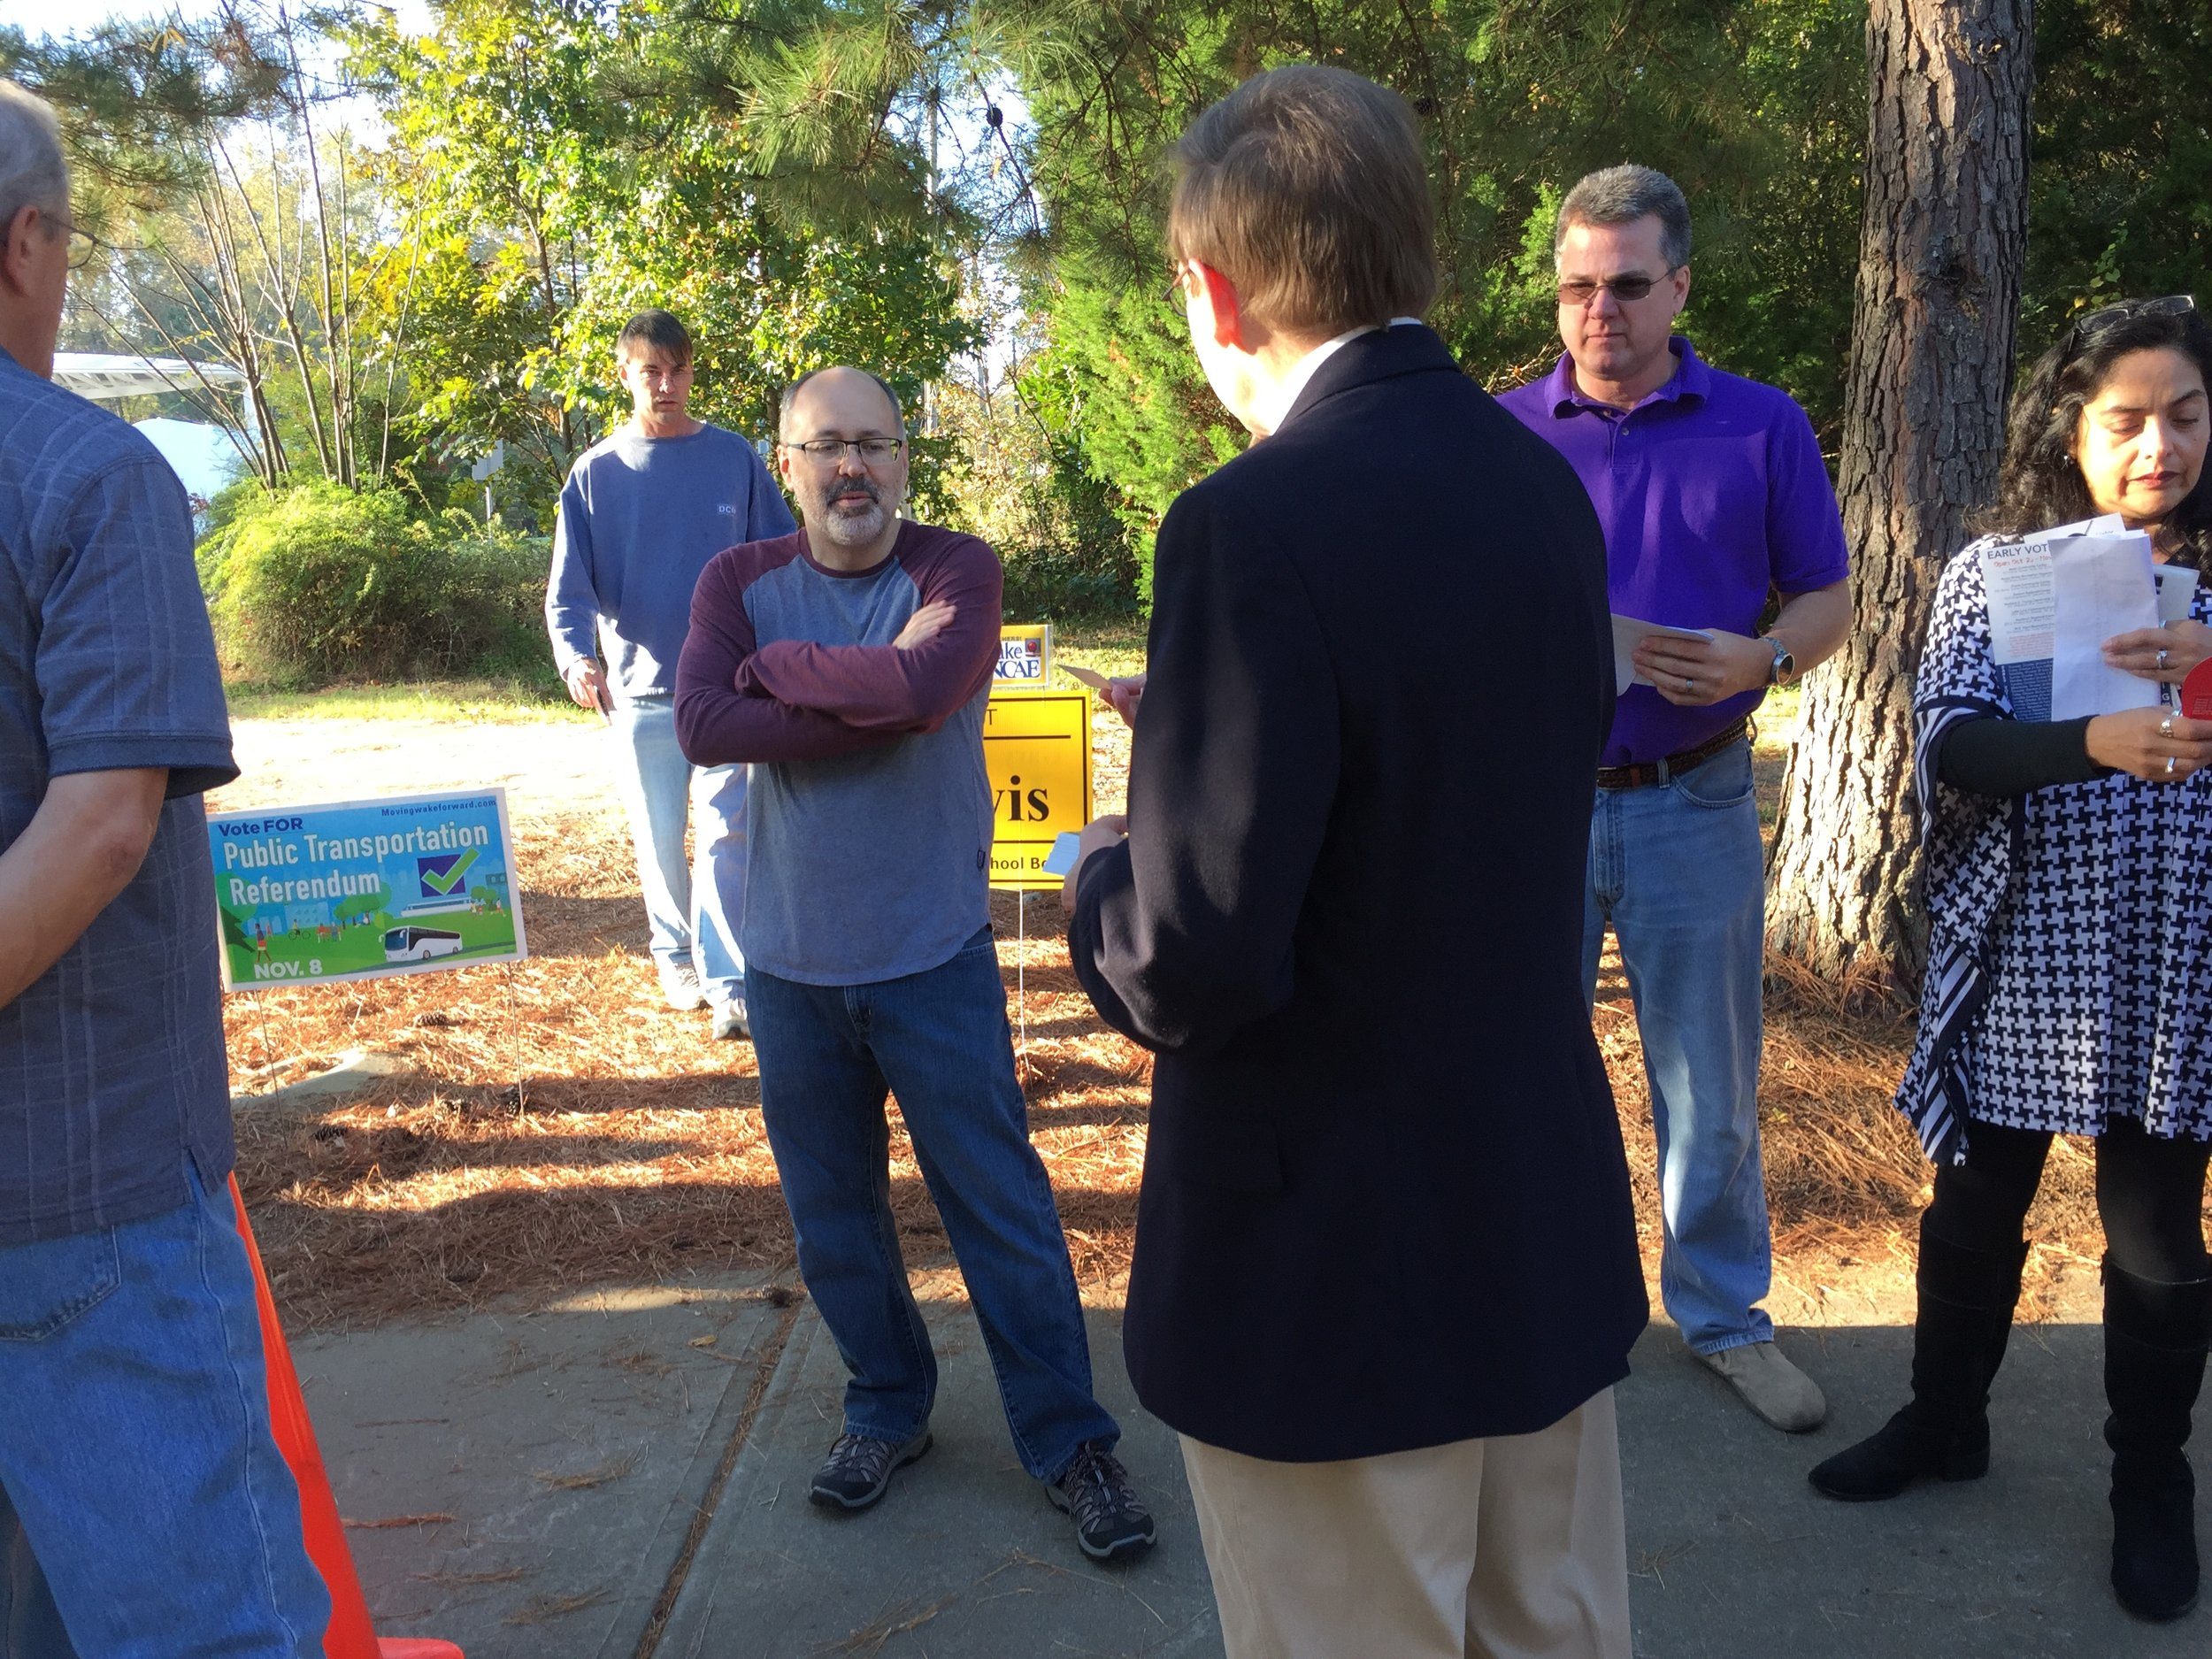 Working early voting polls in Raleigh, October 29, 2016.